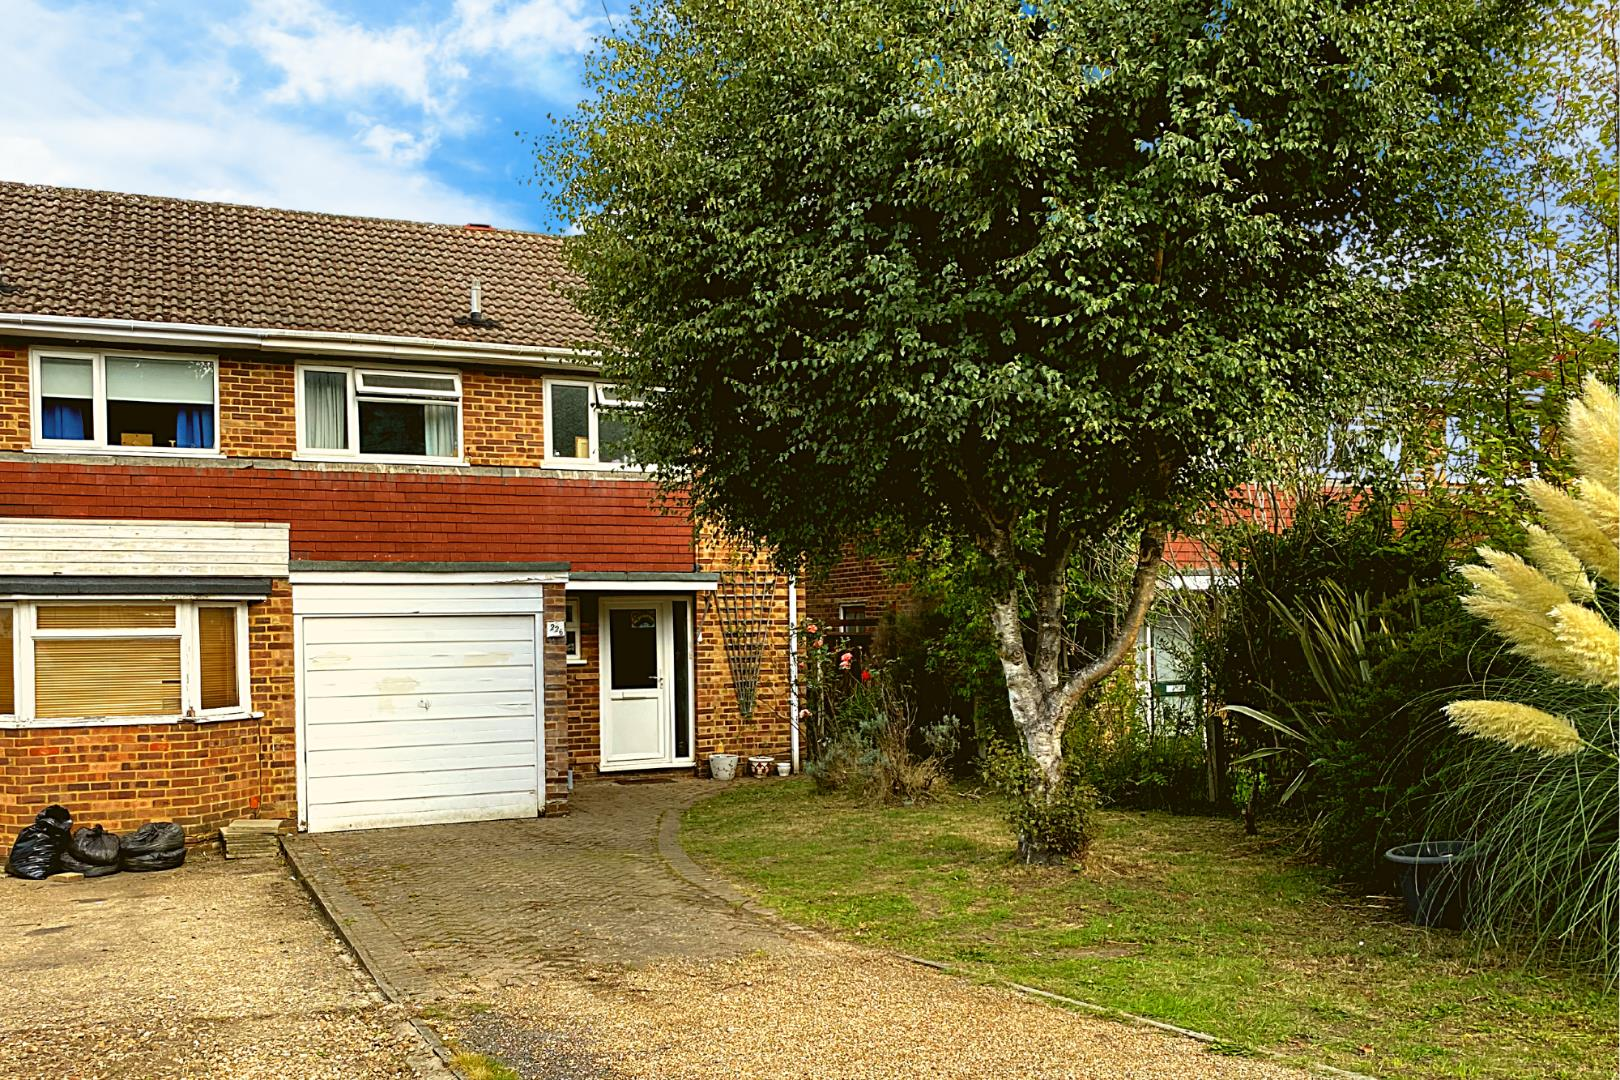 3 bed house for sale in Brookwood, GU24